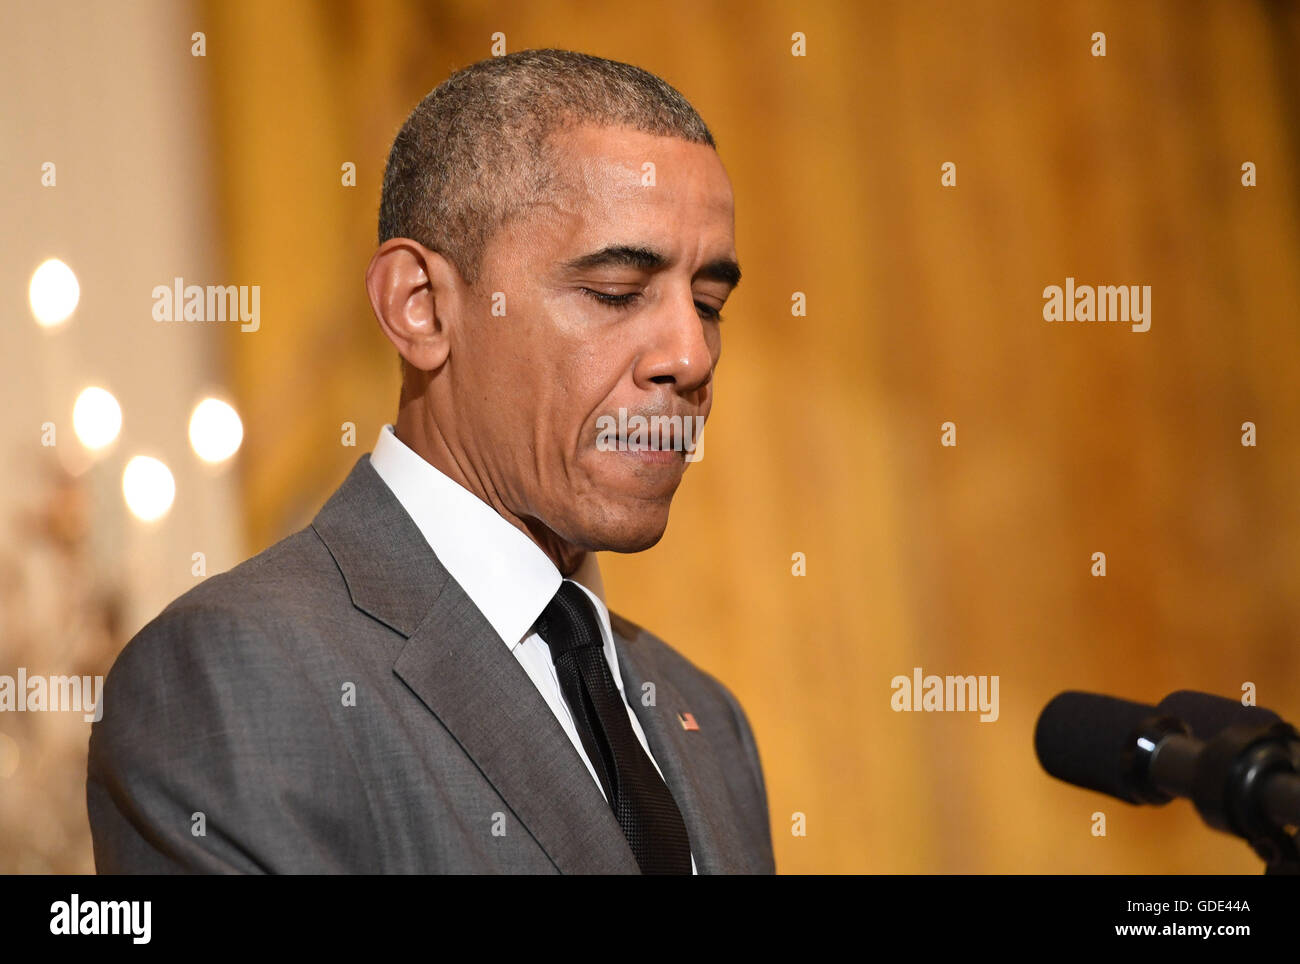 Diplomatic Reception Room White House Stock Photos 4 You Choir Collar Dress Orange Putih United States President Barack Obama Speaks About The Recent Terrorist Attack In Nice France